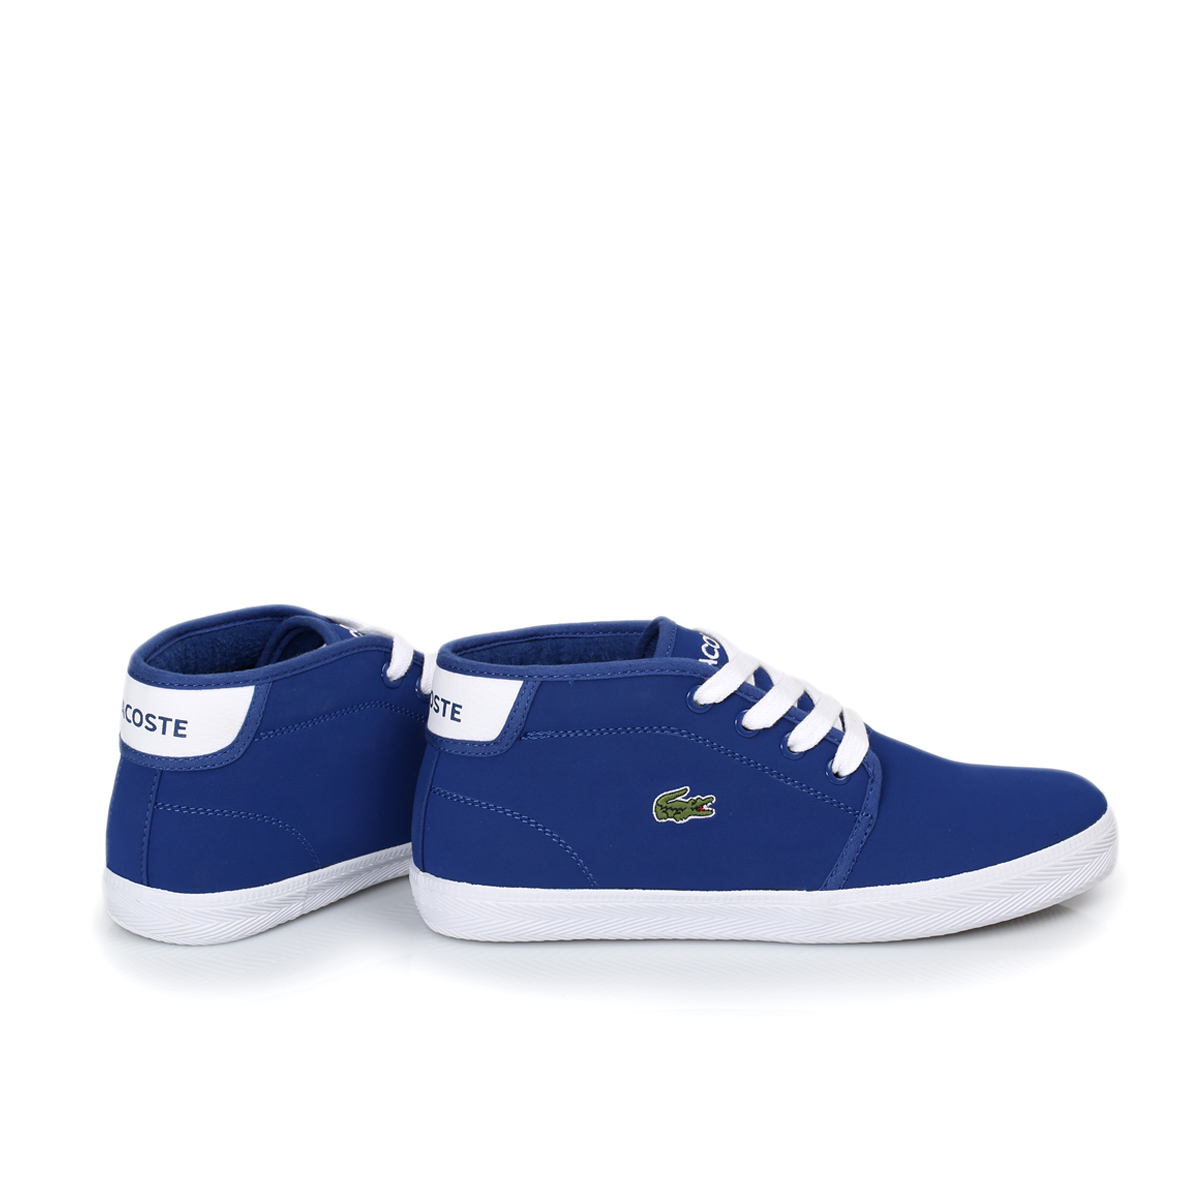 78e4e8959fa0 Kids And Girls Shoes  Kids Shoes Lacoste